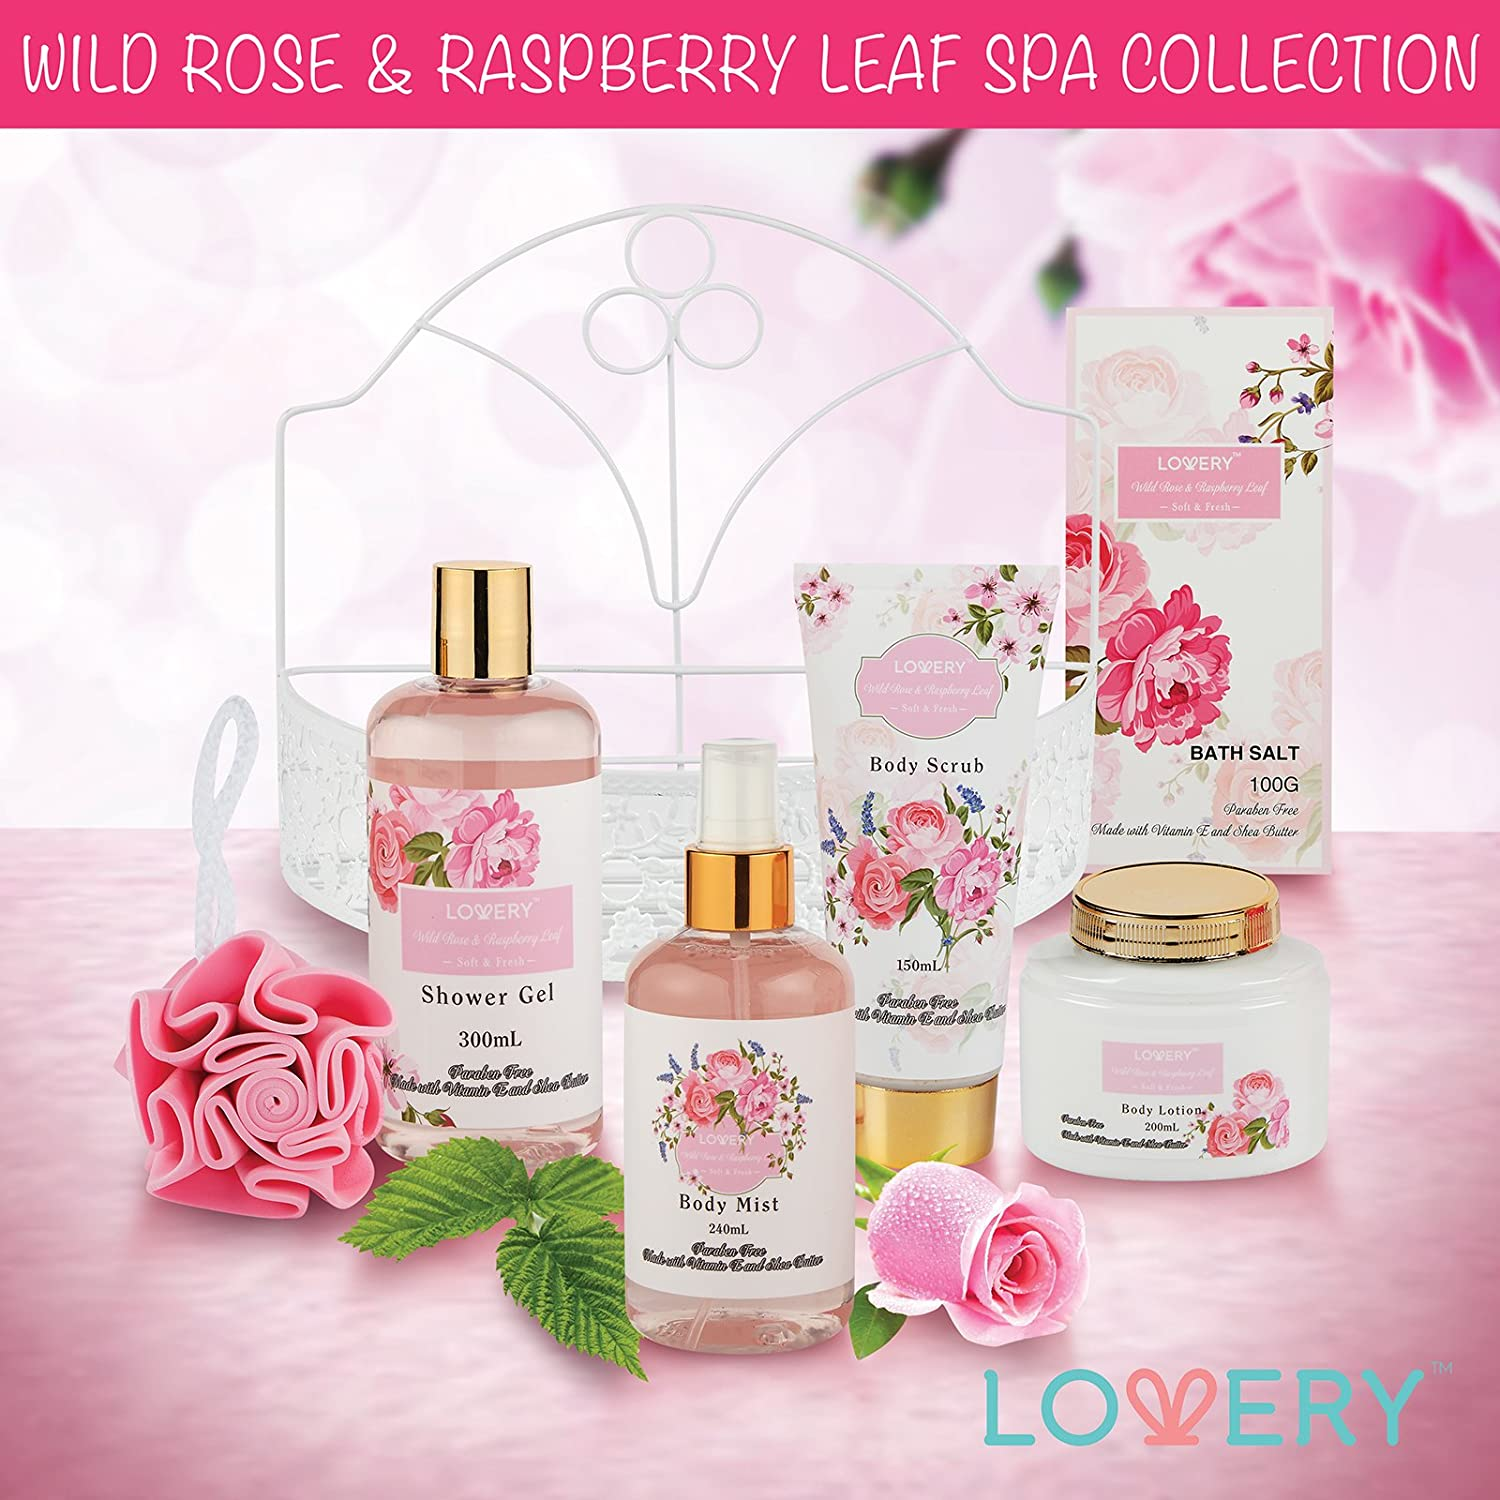 Amazon.com : Home Spa Gift Basket - Wild Rose & Raspberry Leaf Scent ...